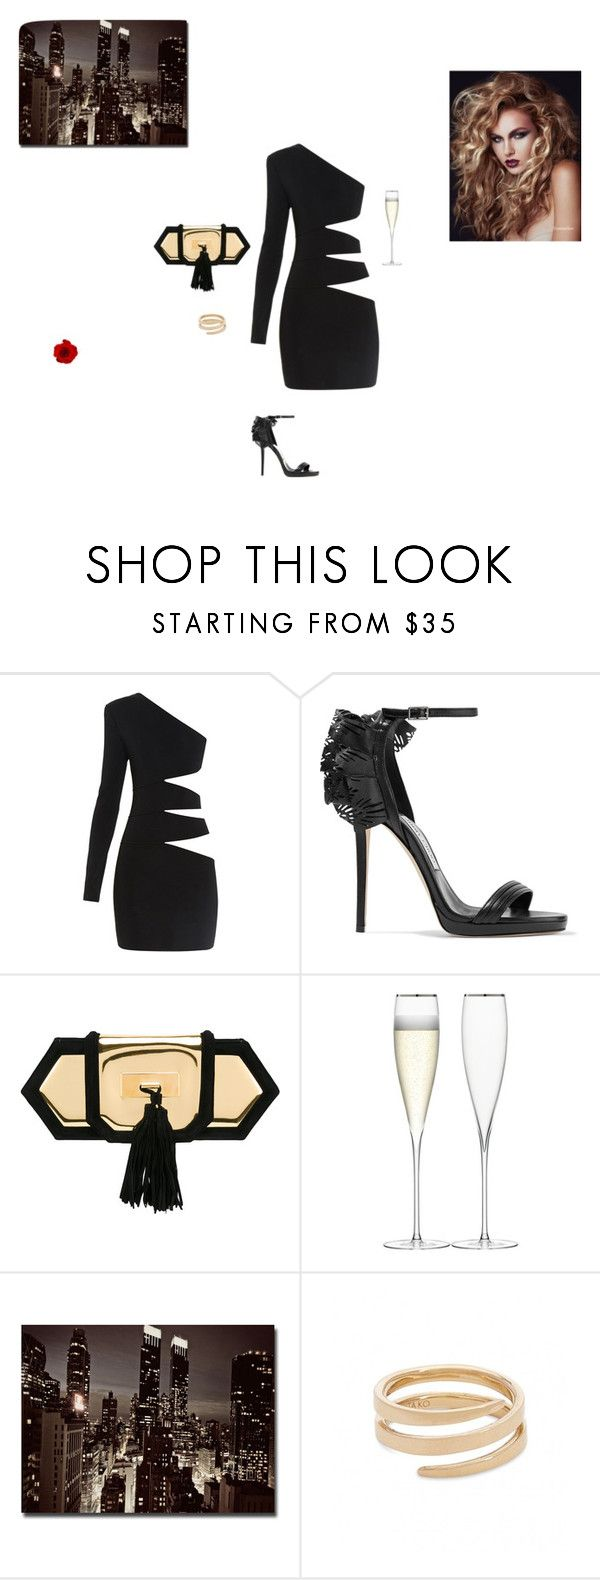 """Untitled #149"" by sb187 ❤ liked on Polyvore featuring Balmain, Jimmy Choo, LSA International, Trademark Fine Art and Anita Ko"